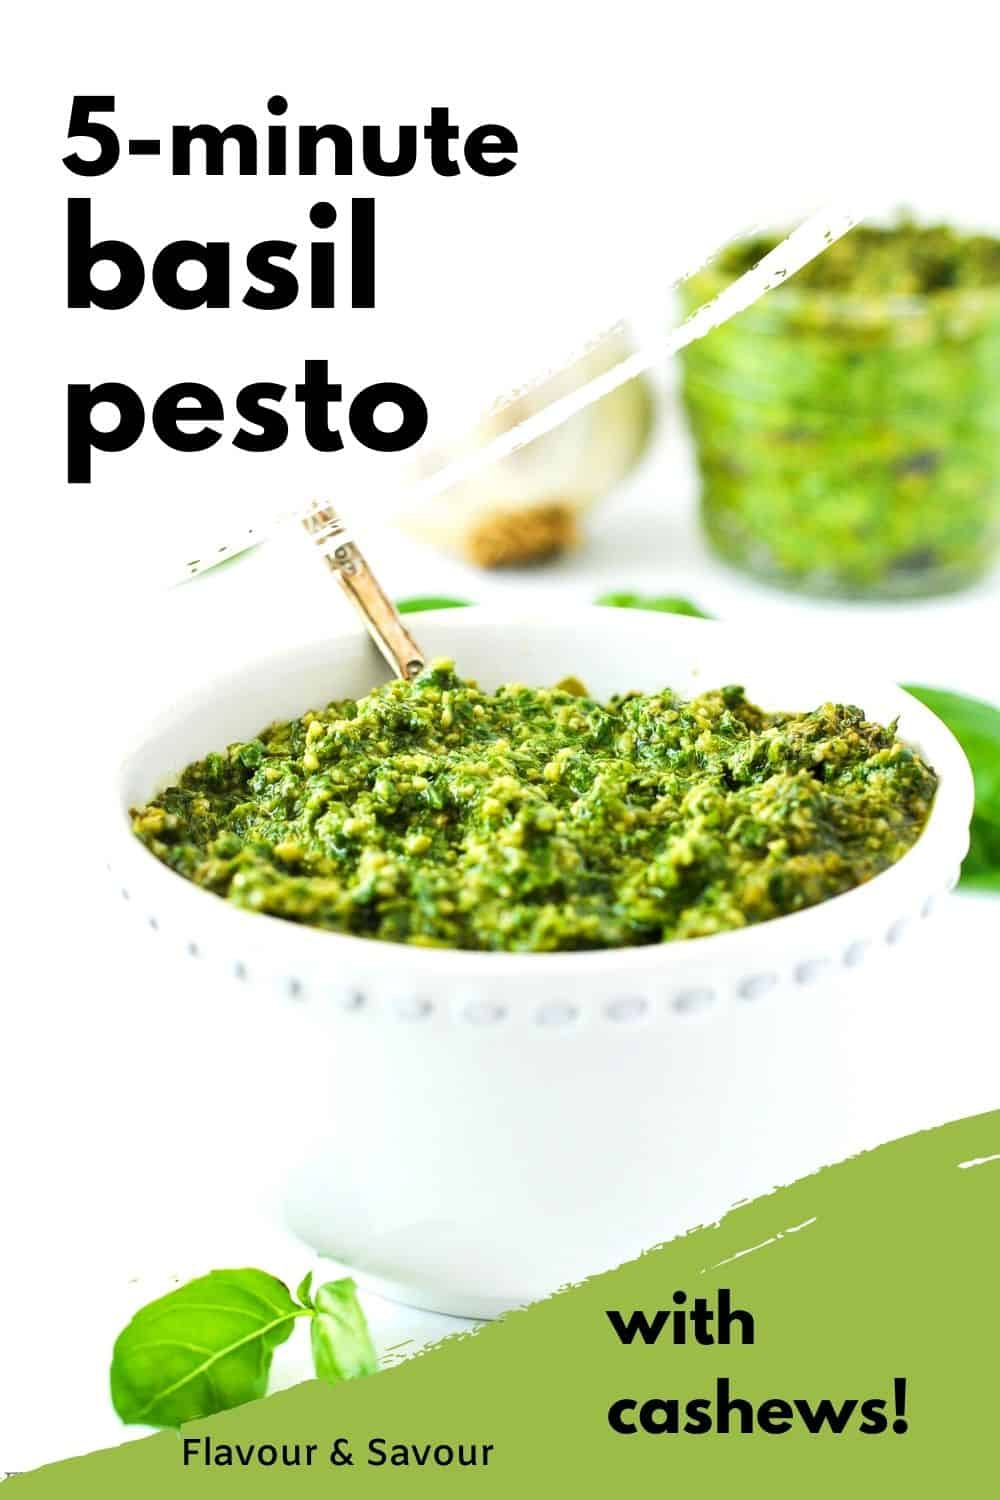 Graphic for 5 minute basil pesto with text overlay